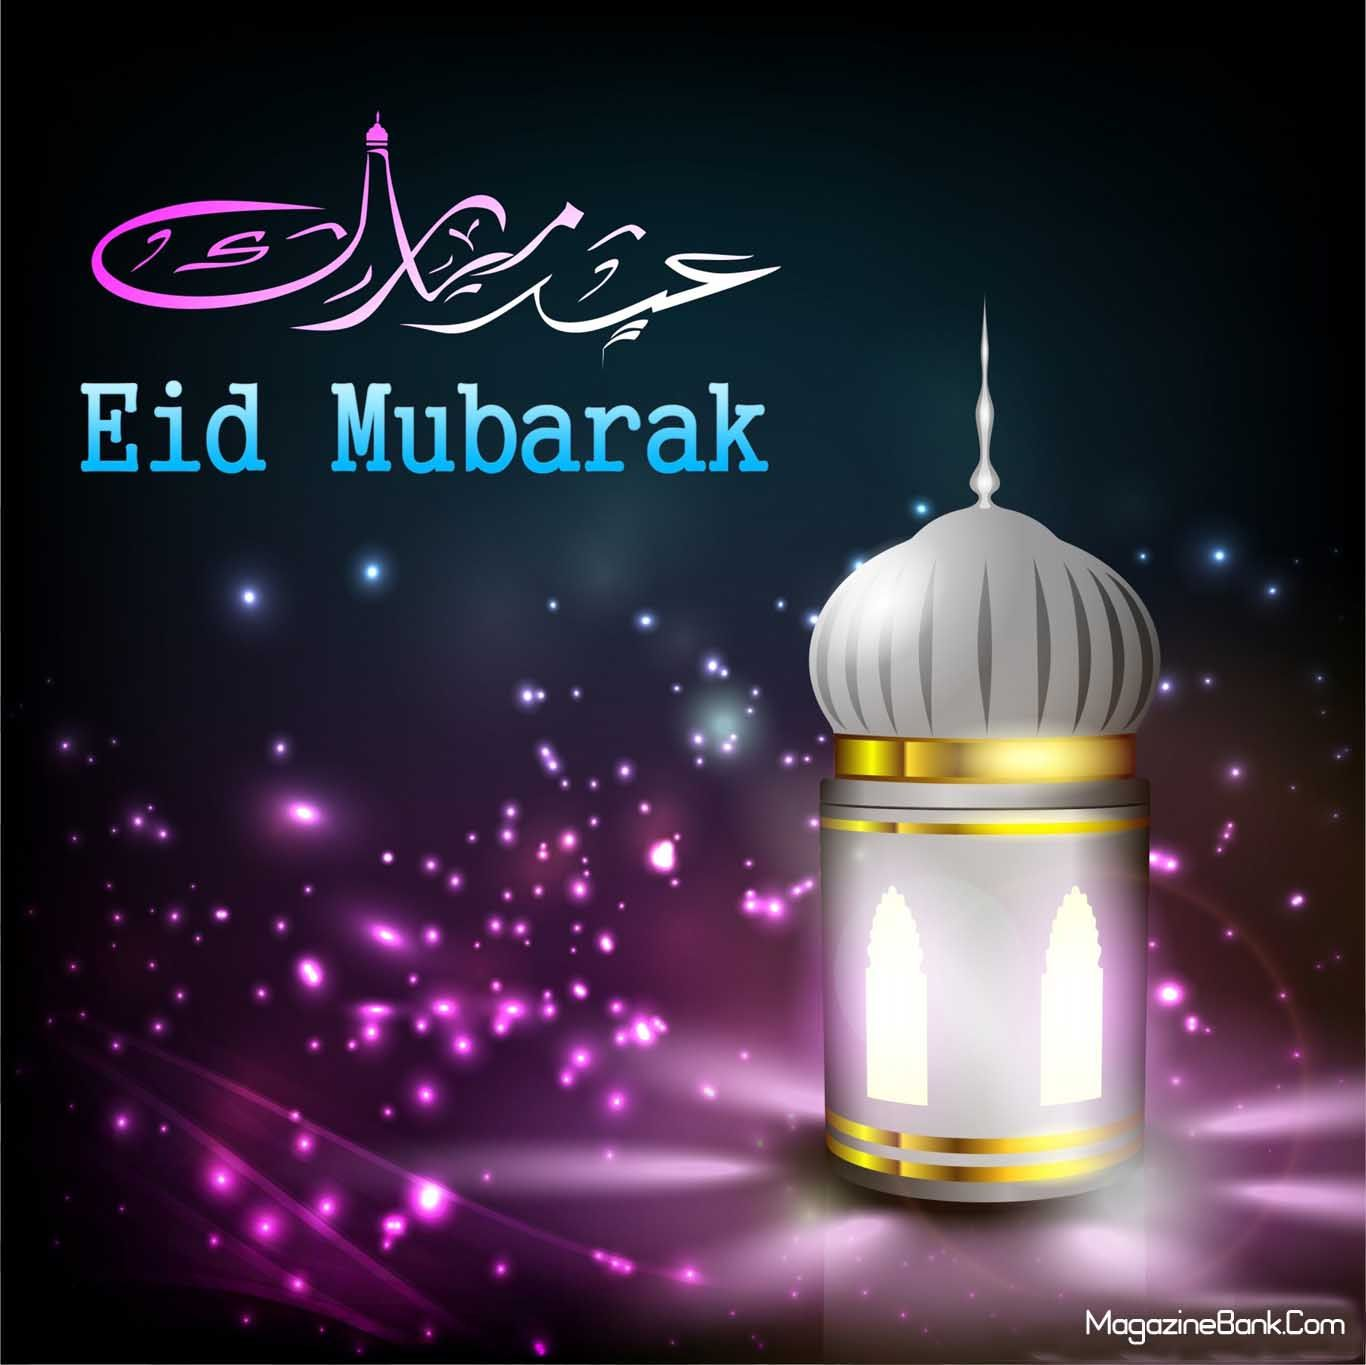 Eid mubarak 2015 images and hd wallpapers free download sms wishes eid mubarak 2015 images and hd wallpapers free download sms wishes poetry kristyandbryce Images